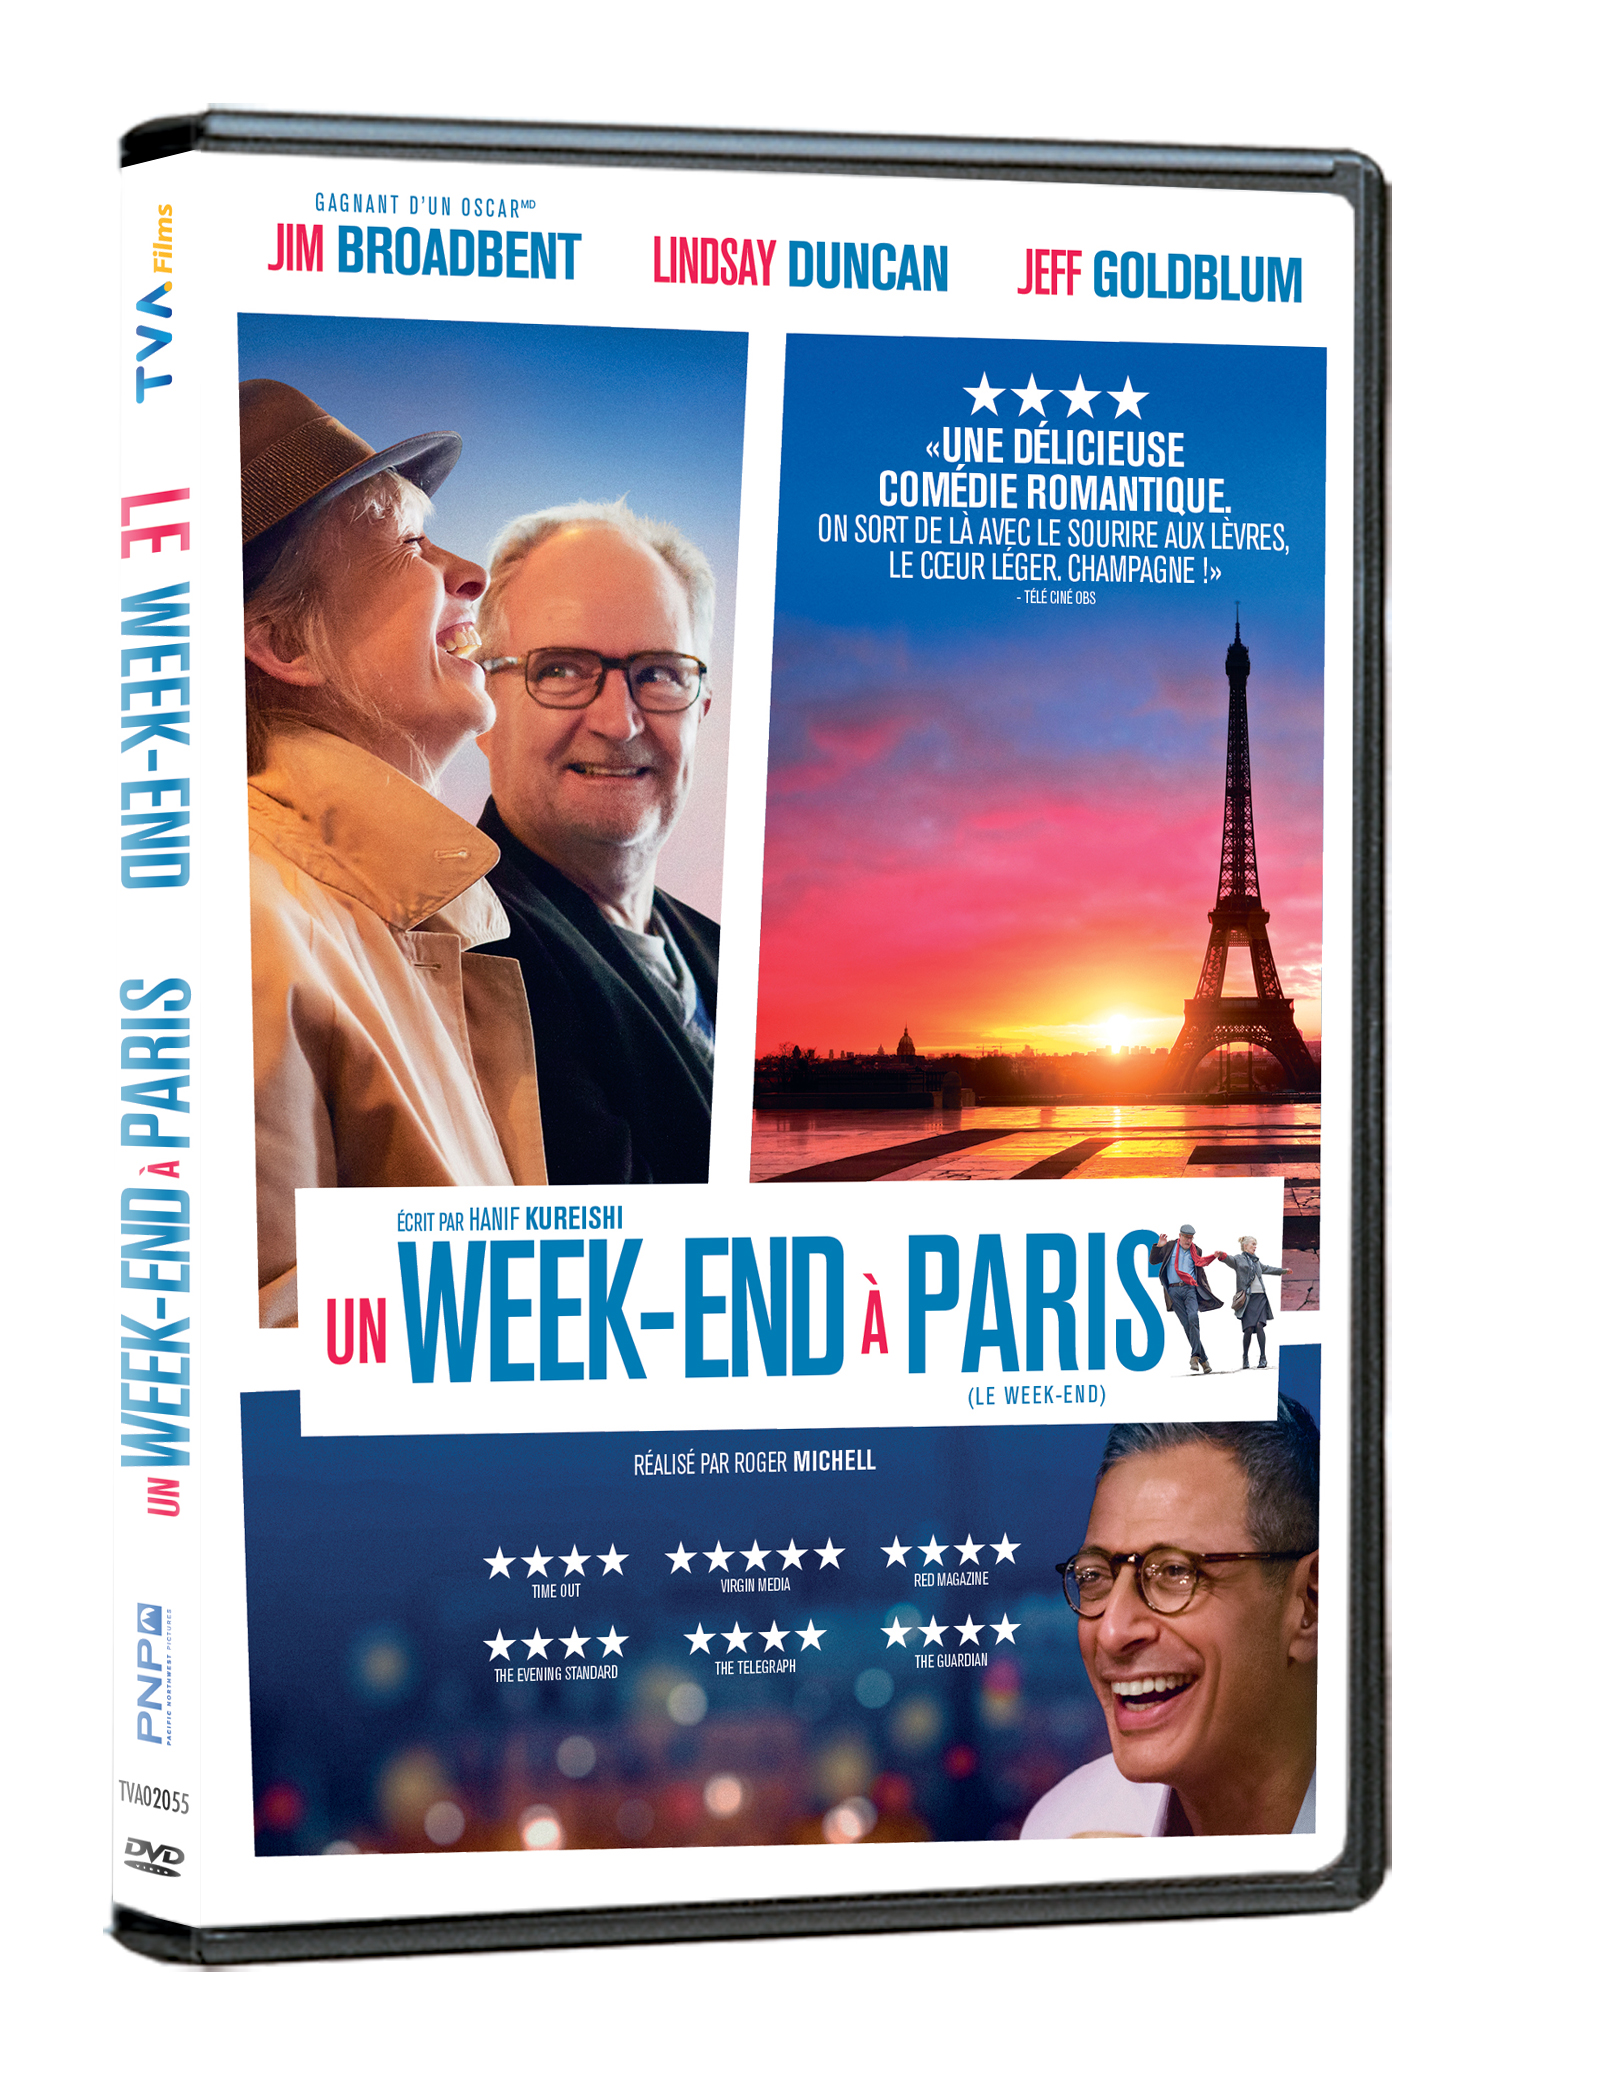 Un Week-End a Paris DVD 3D